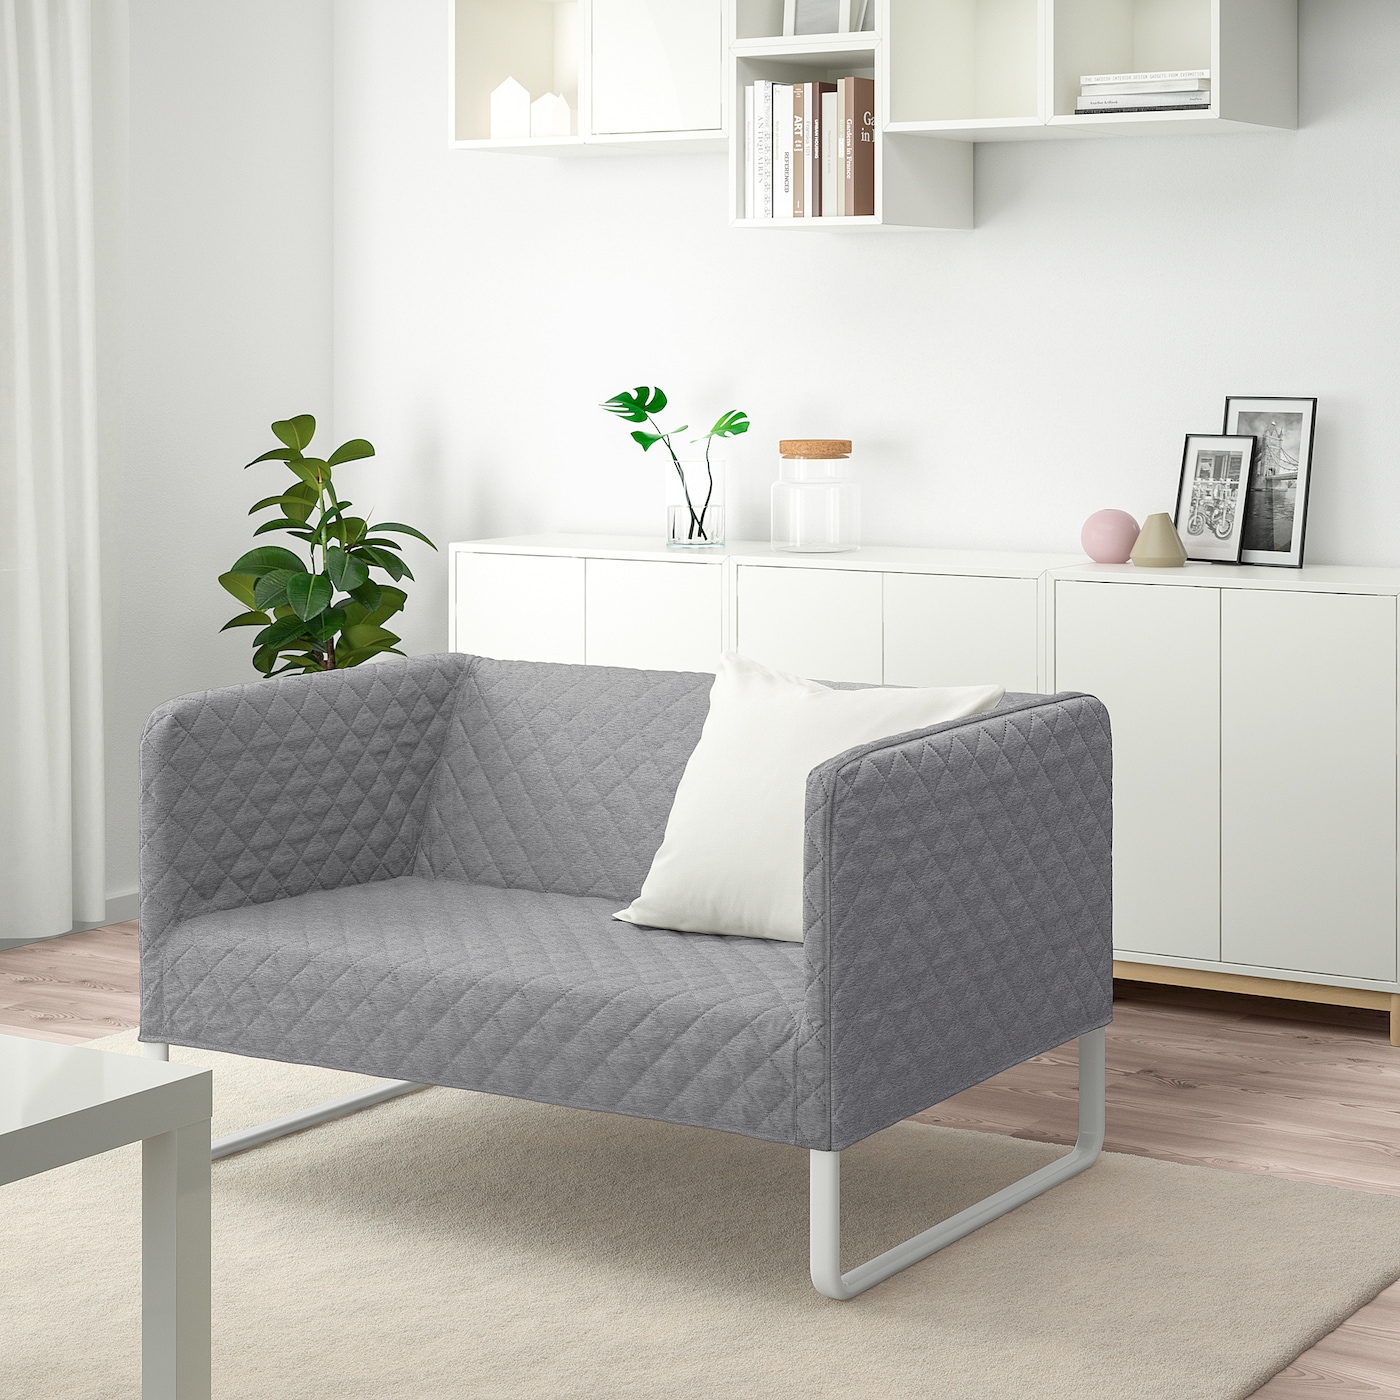 KNOPPARP 2-seat sofa, Knisa light grey